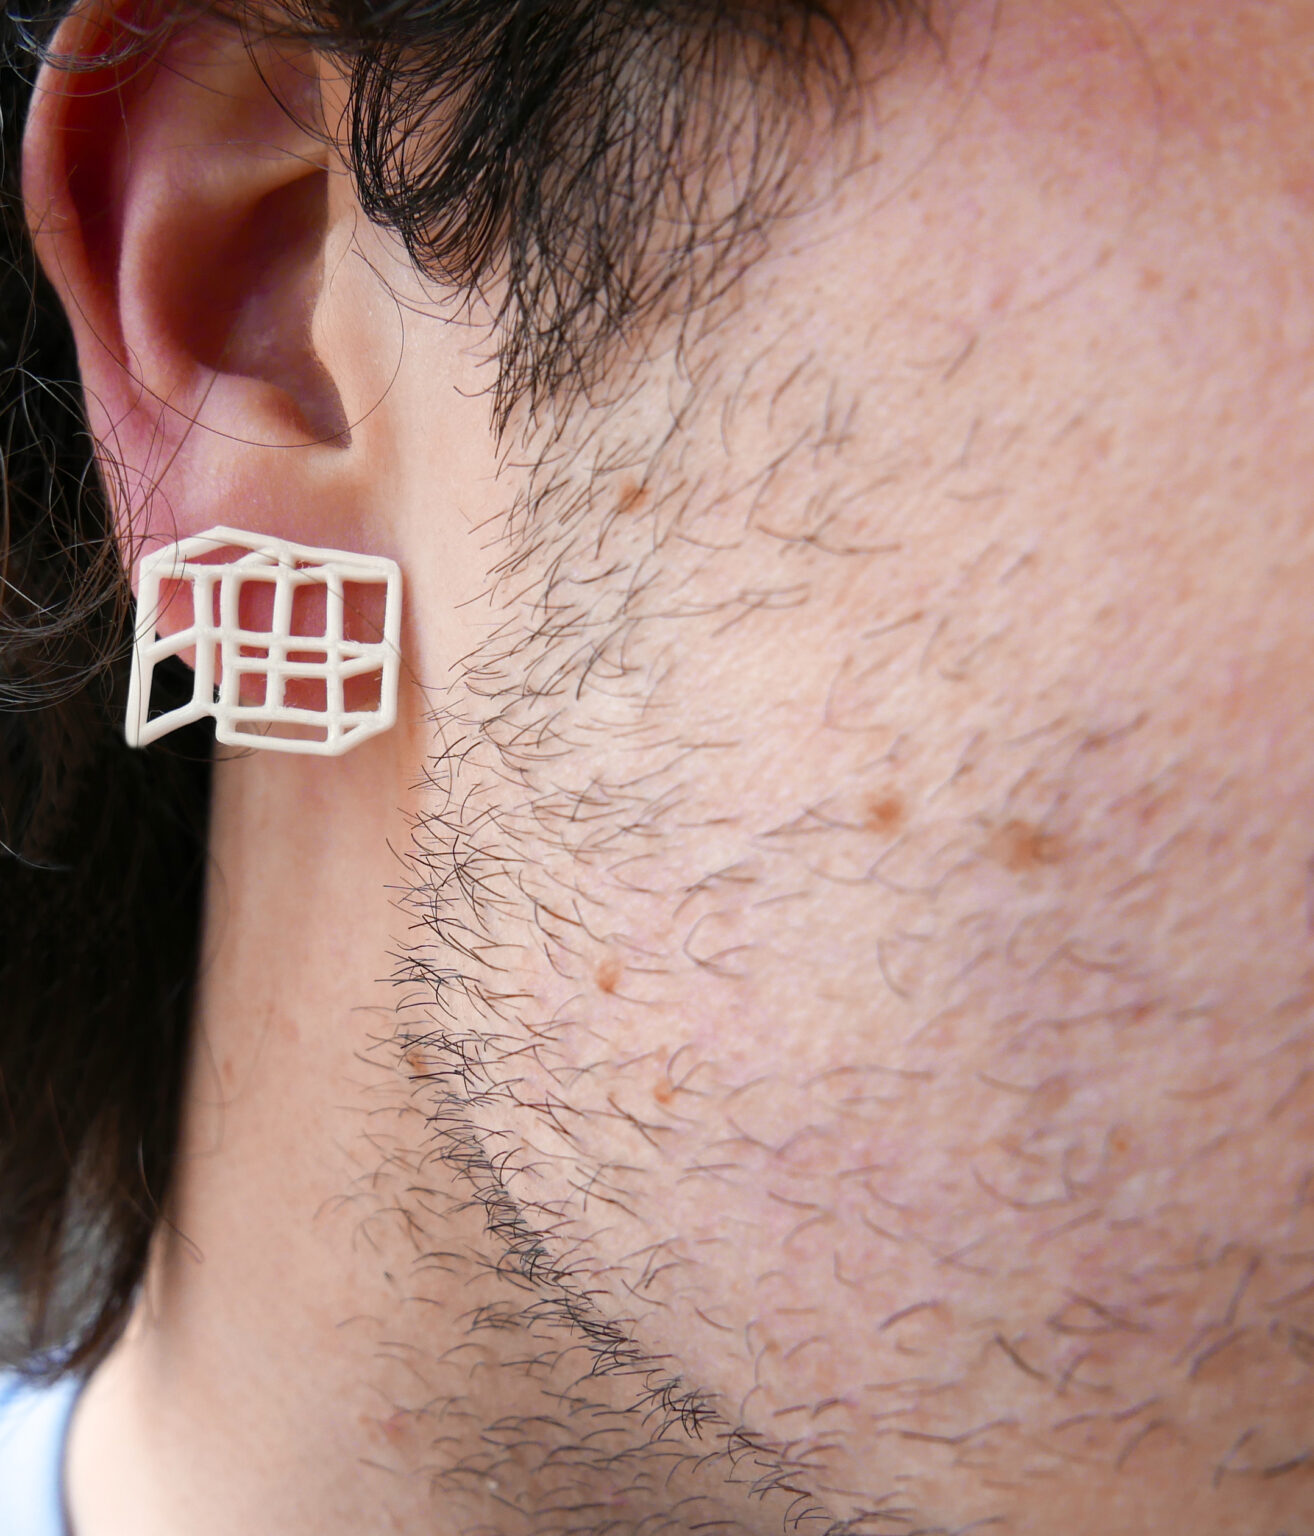 3D printed portable bus stop earring in someone's ear with dark hair and stubble